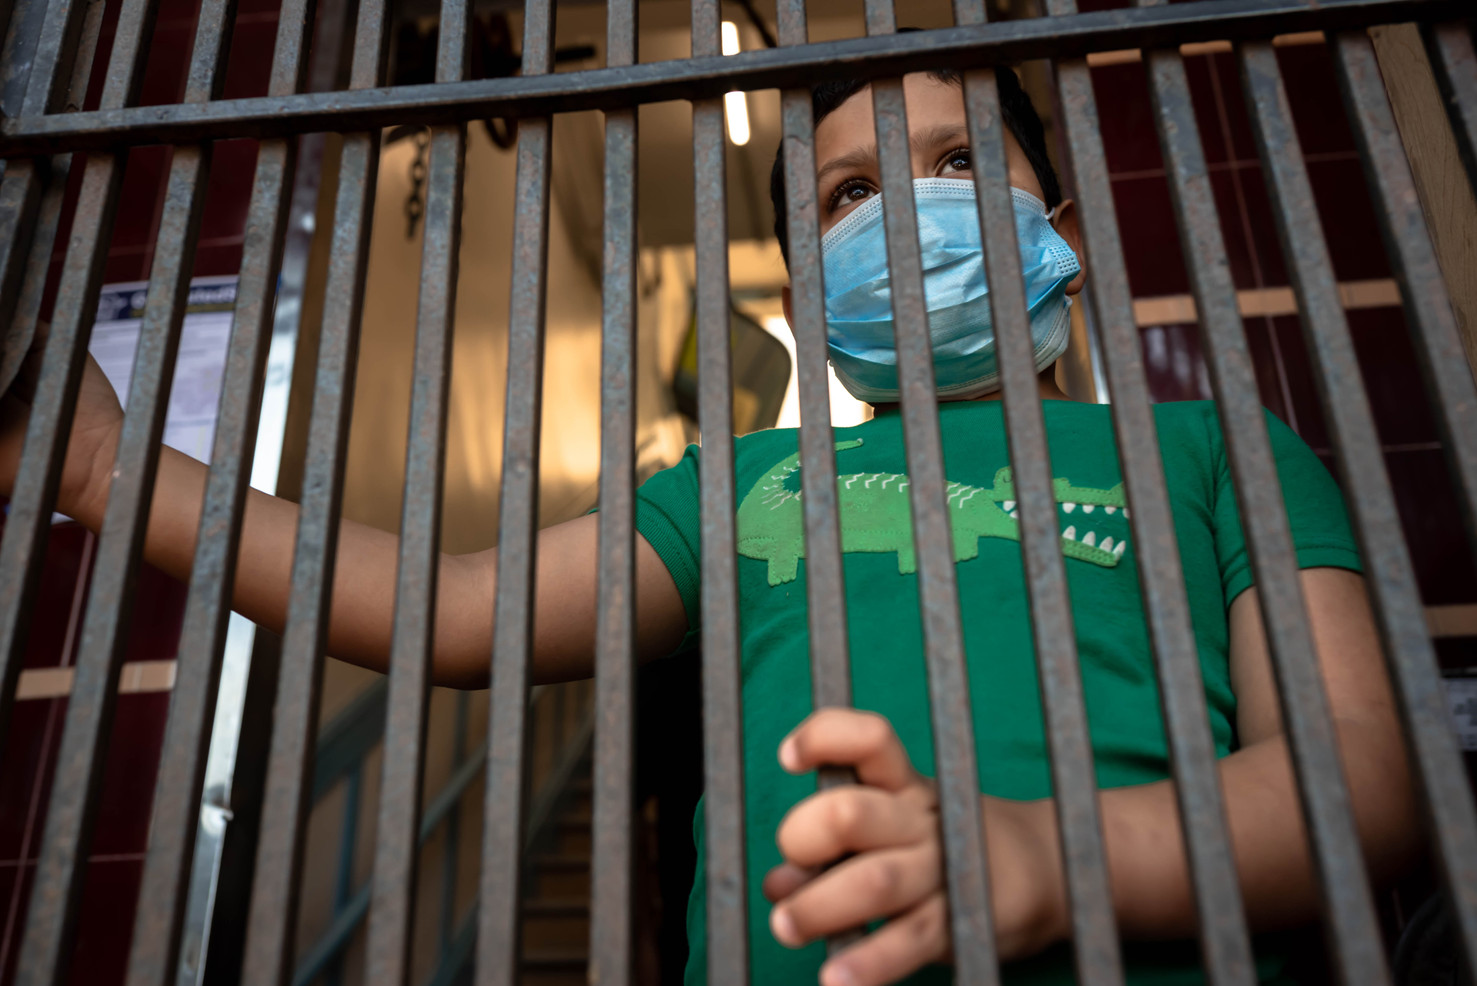 Anderson Garcia Hidalgo looks out the gate of his family's shared residence at the end of his family's self quarantine in the Latino Cultural District of San Francisco. His mother's partner was tested positive one month prior and has been supported by community programs such as testing, food deliveries, and medical care.